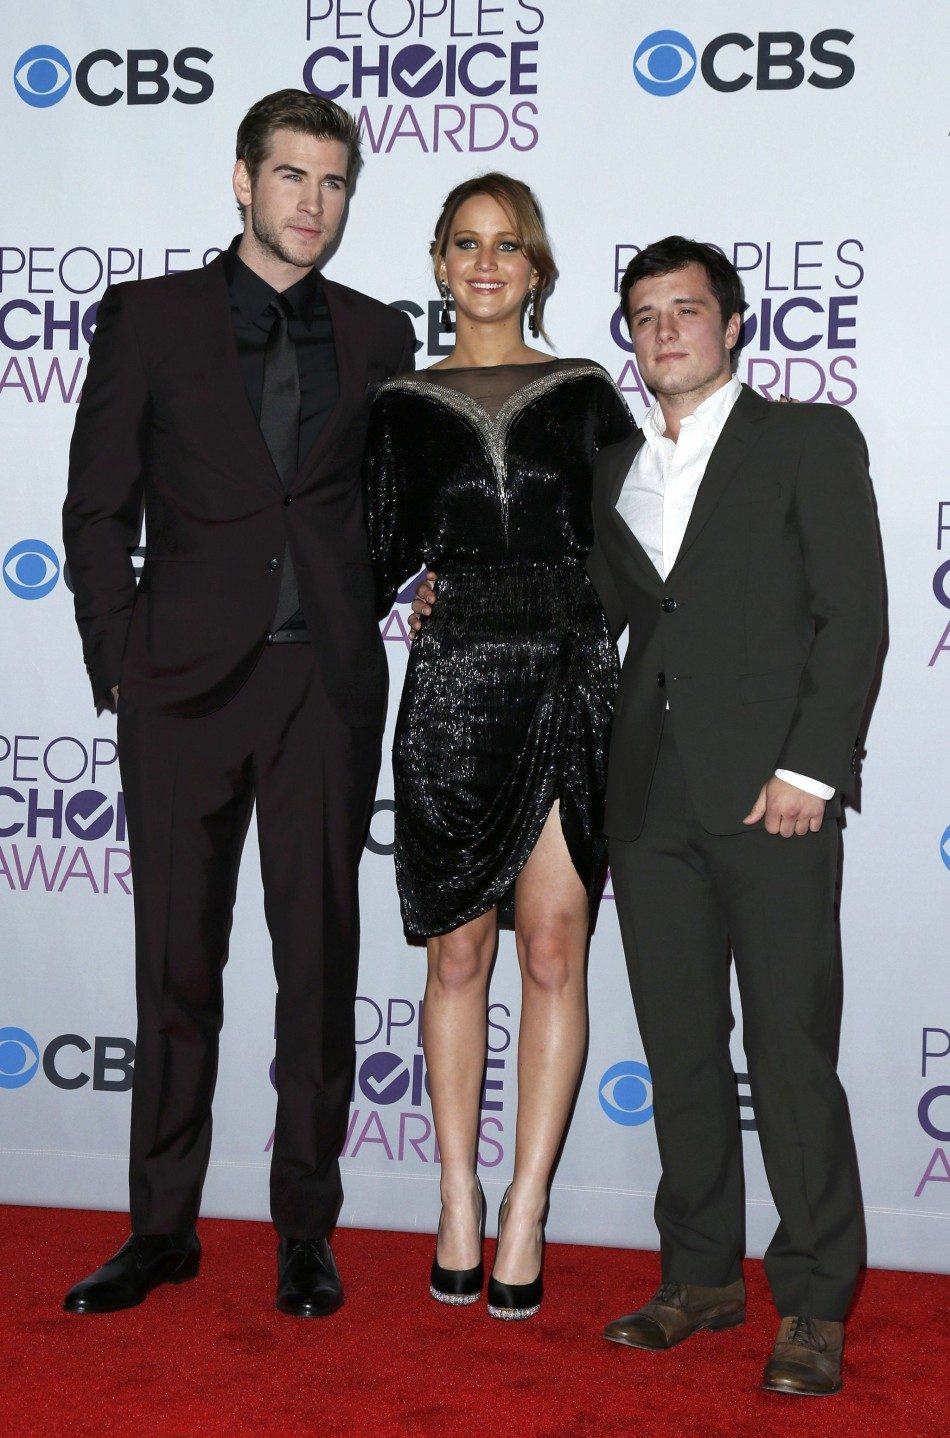 Hemsworth, Lawrence and Hutcherson of The Hunger Games pose backstage at the 2013 Peoples Choice Awards in Los Angeles